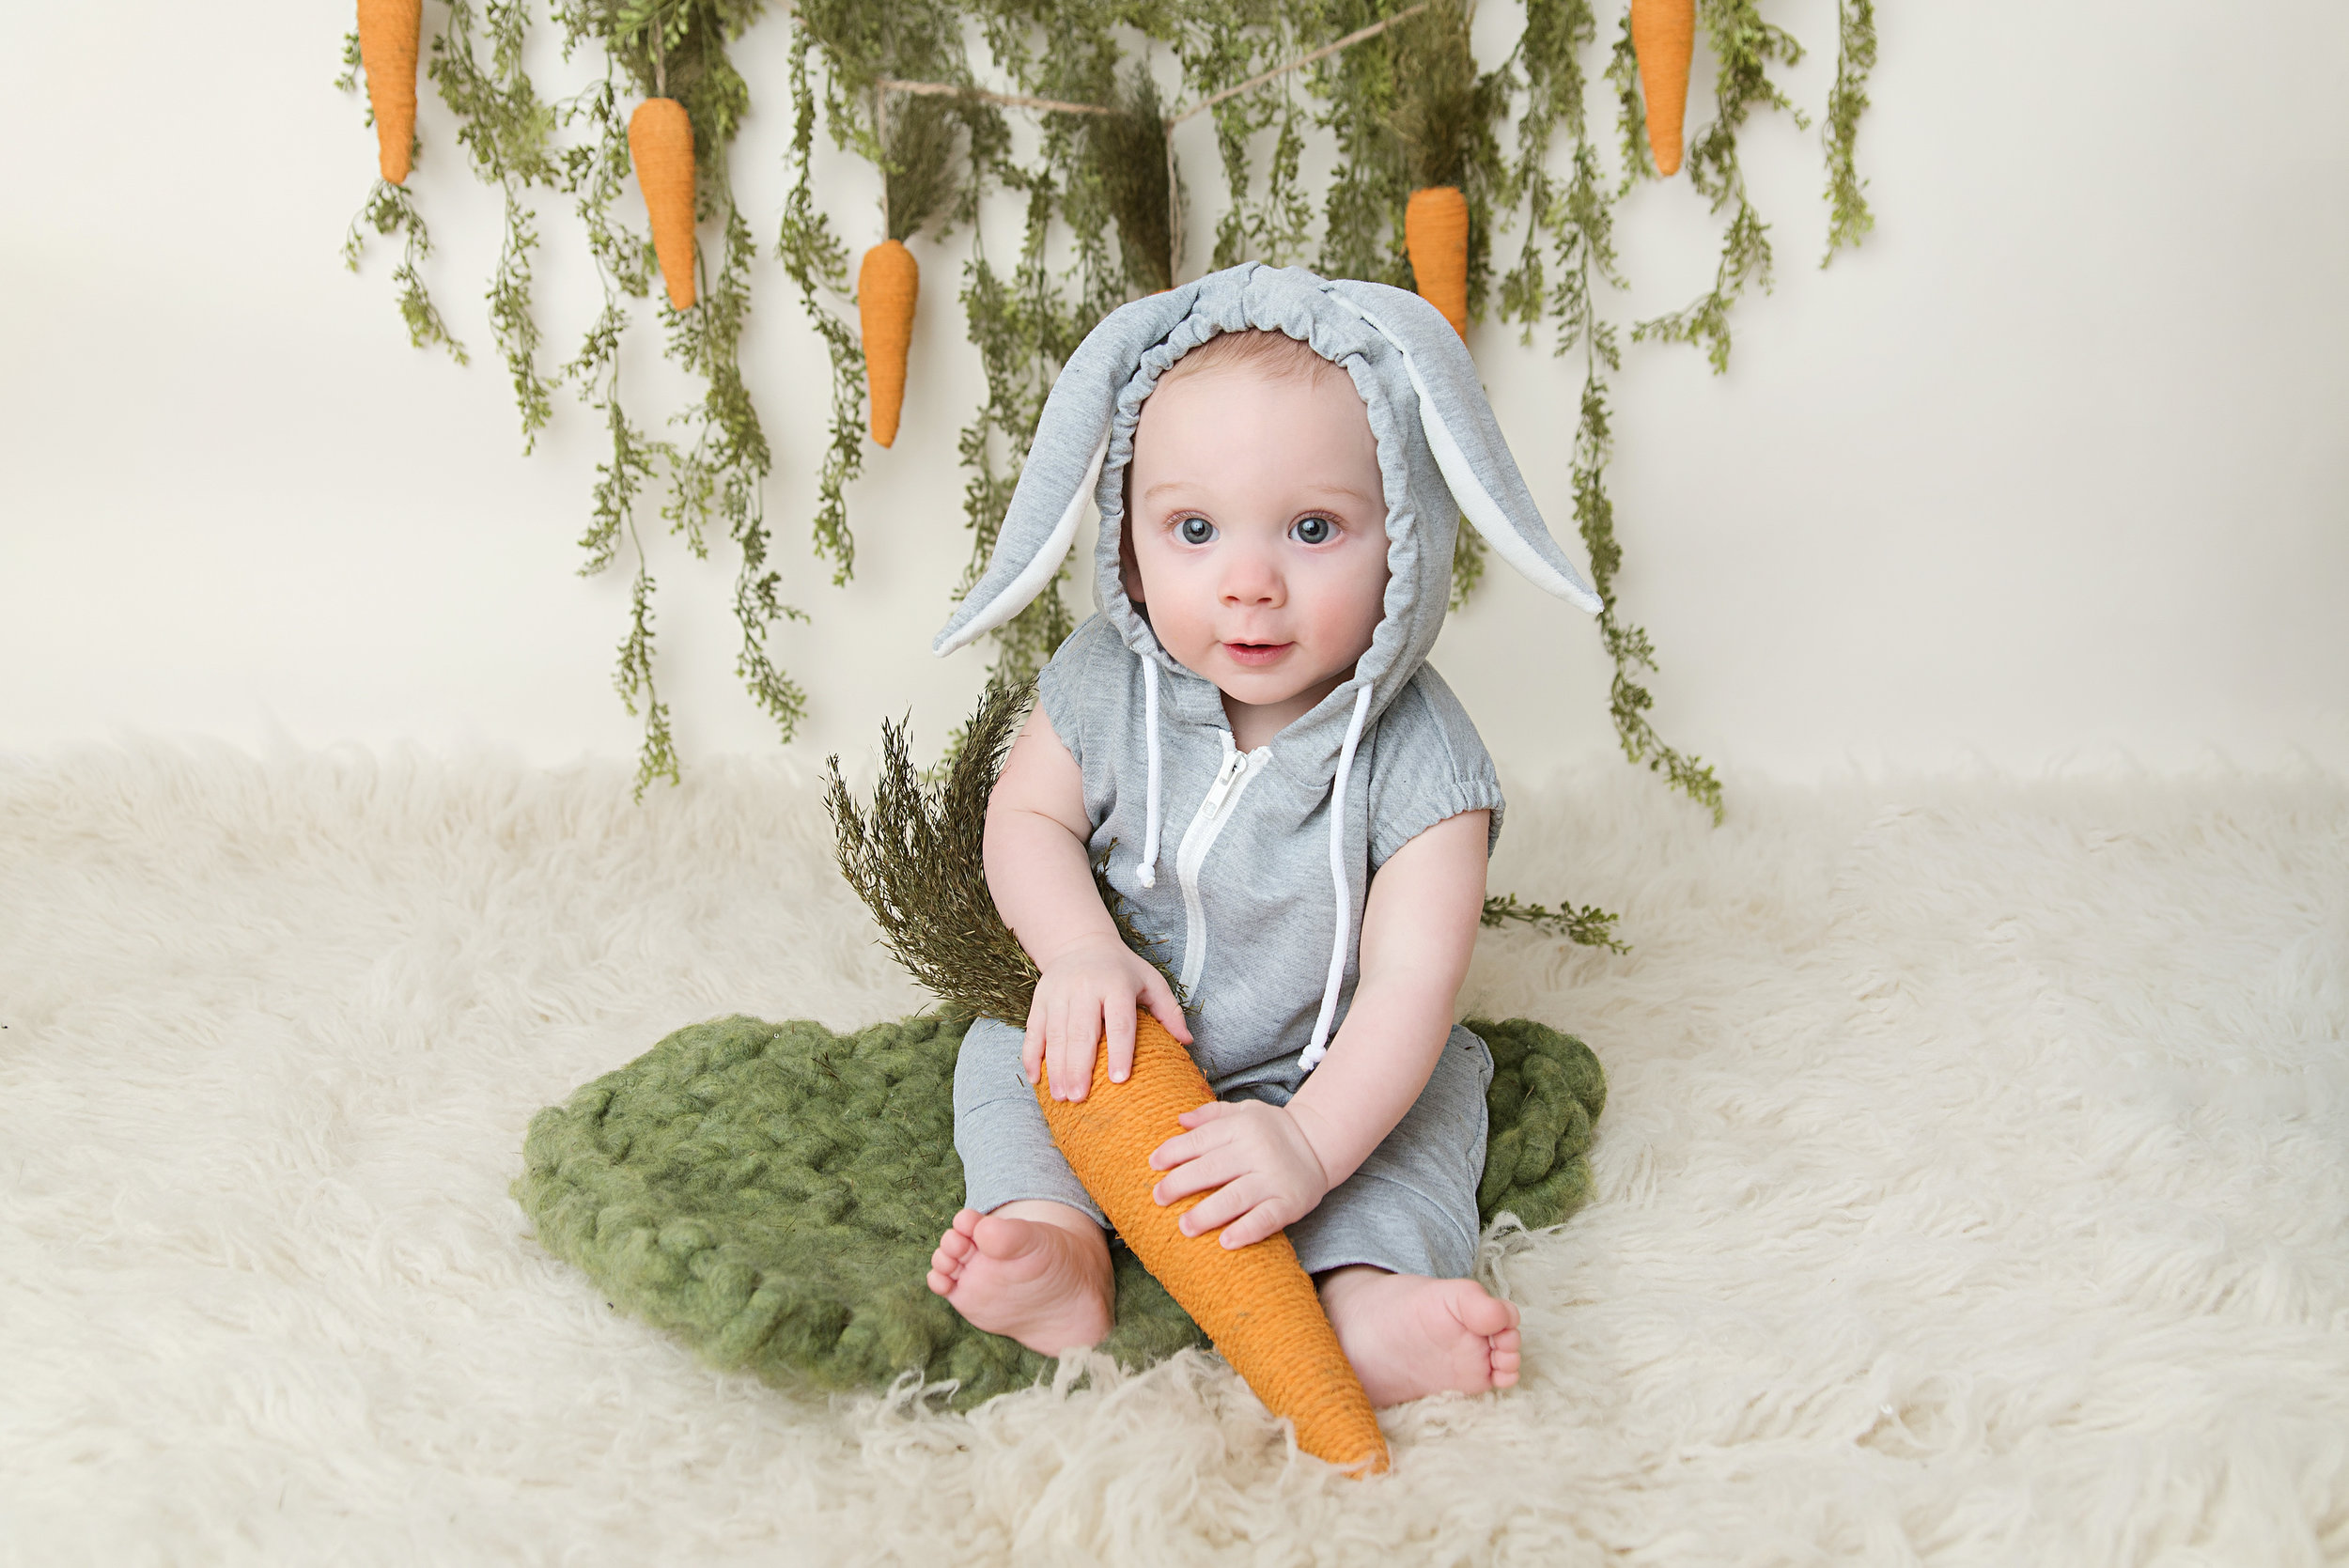 st-louis-baby-photographer-baby-boy-in-bunny-romper-with-green-bunting.jpg